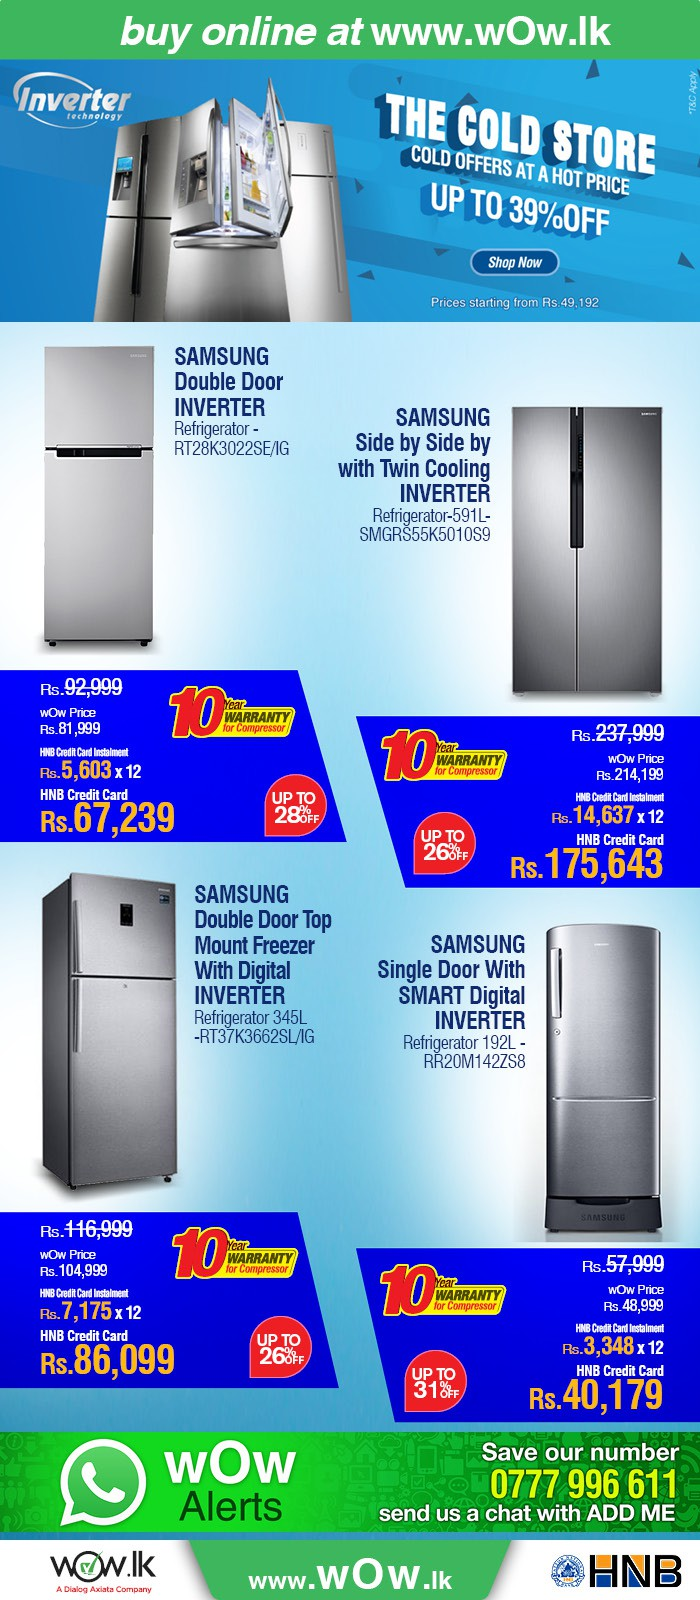 http://www.wow.lk/mall/buyonline/home-appliances-refrigerators/?Ns=sku.inventoryAvailability%7C0&utm_source=dailymail&utm_medium=newsletter&utm_campaign=fridgesale